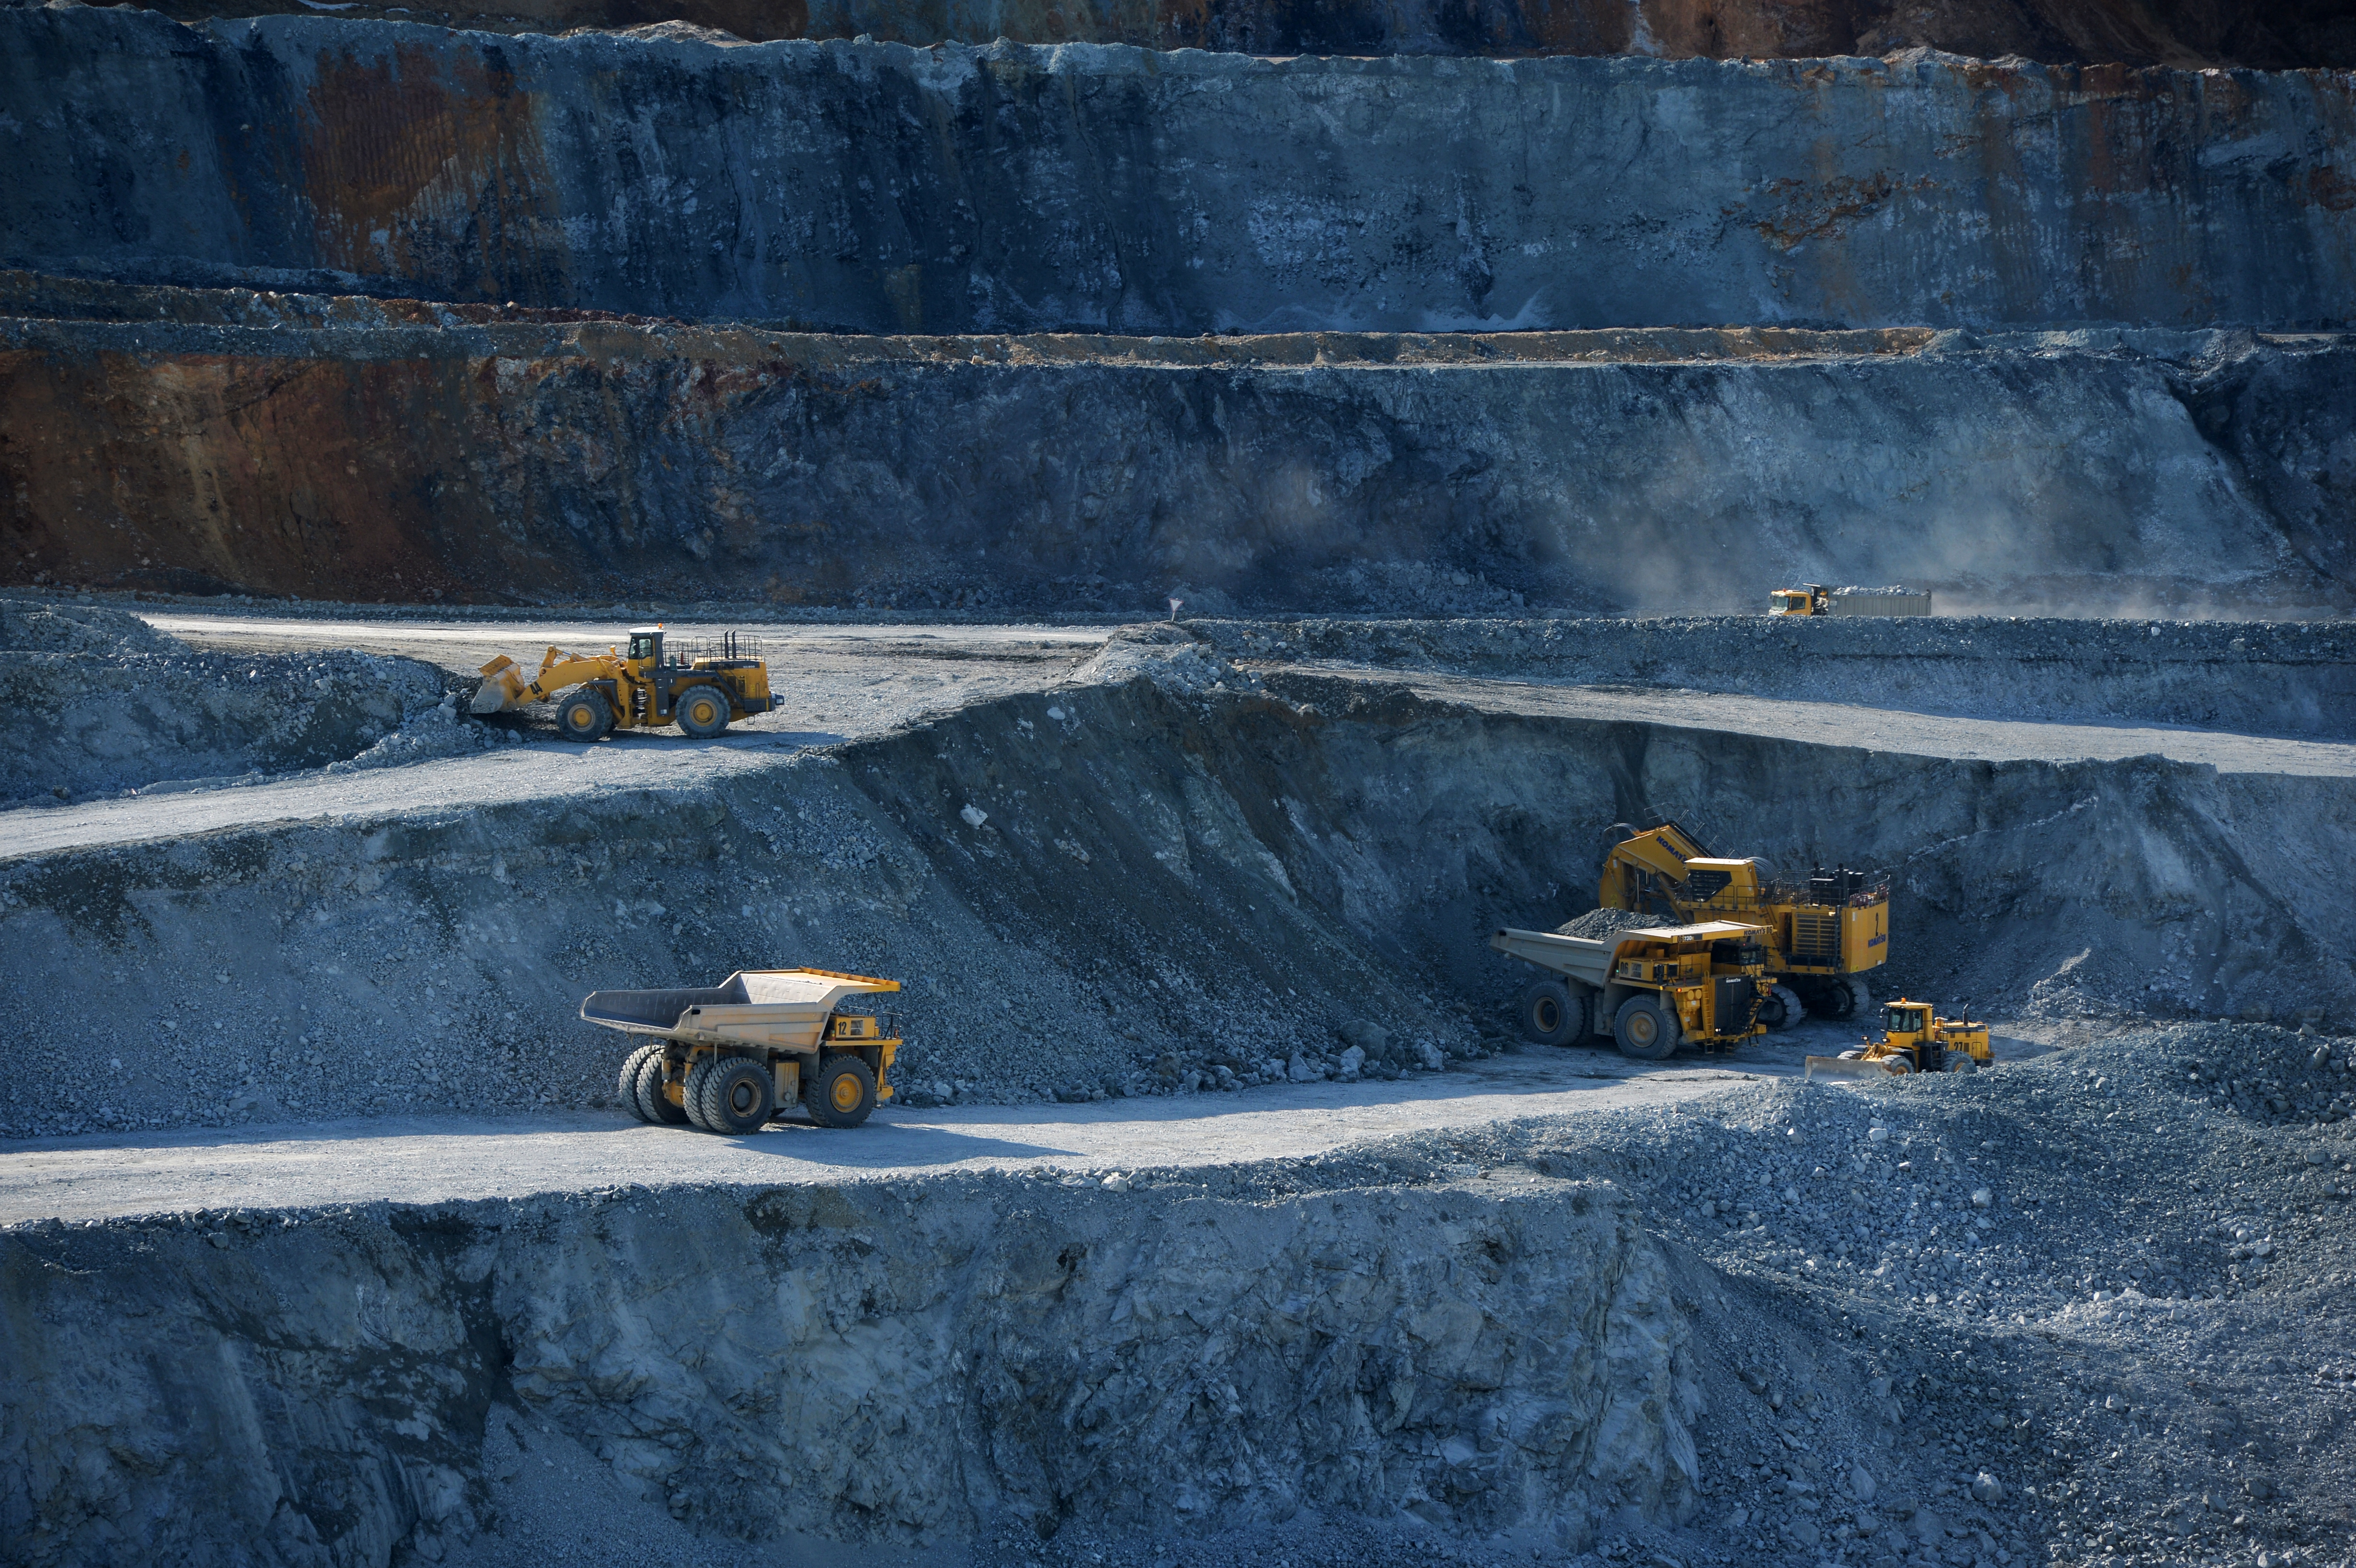 Mikheyevsky Ore Mining and Processing Works in Chelyabinsk Region